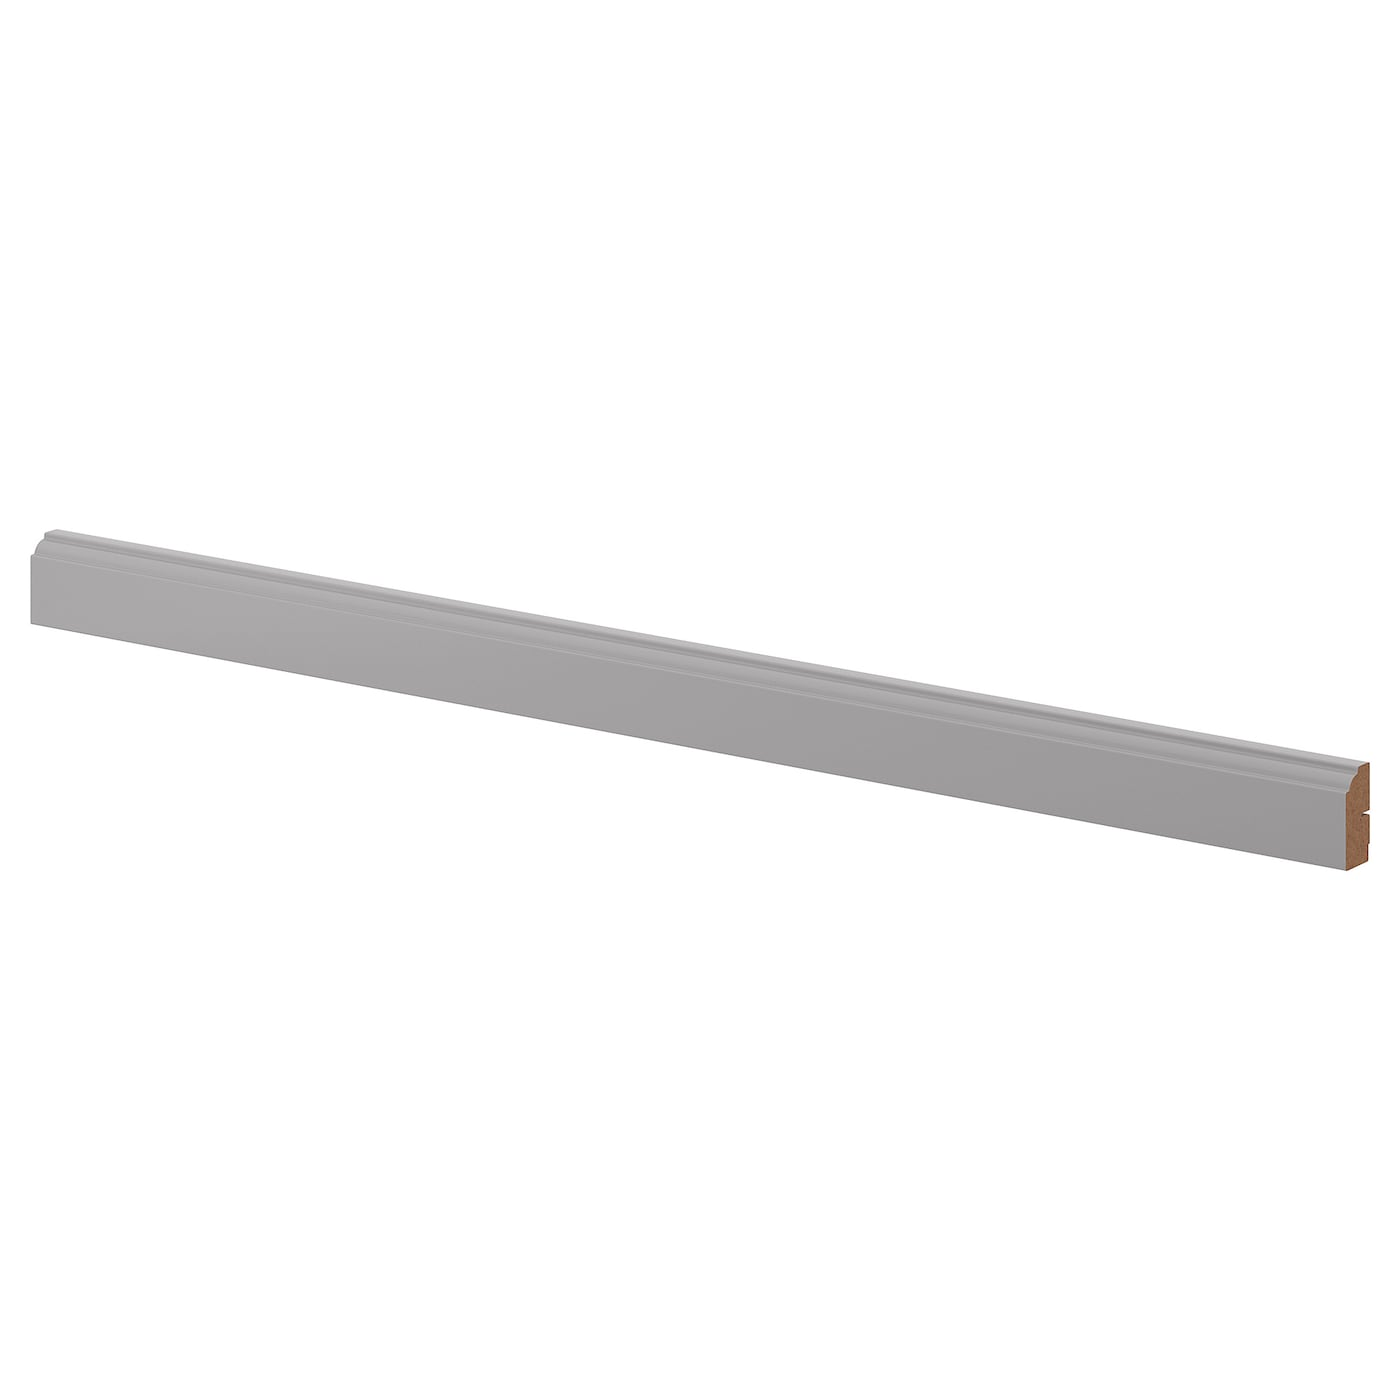 IKEA BODBYN contoured deco strip/moulding Can be cut to desired length.